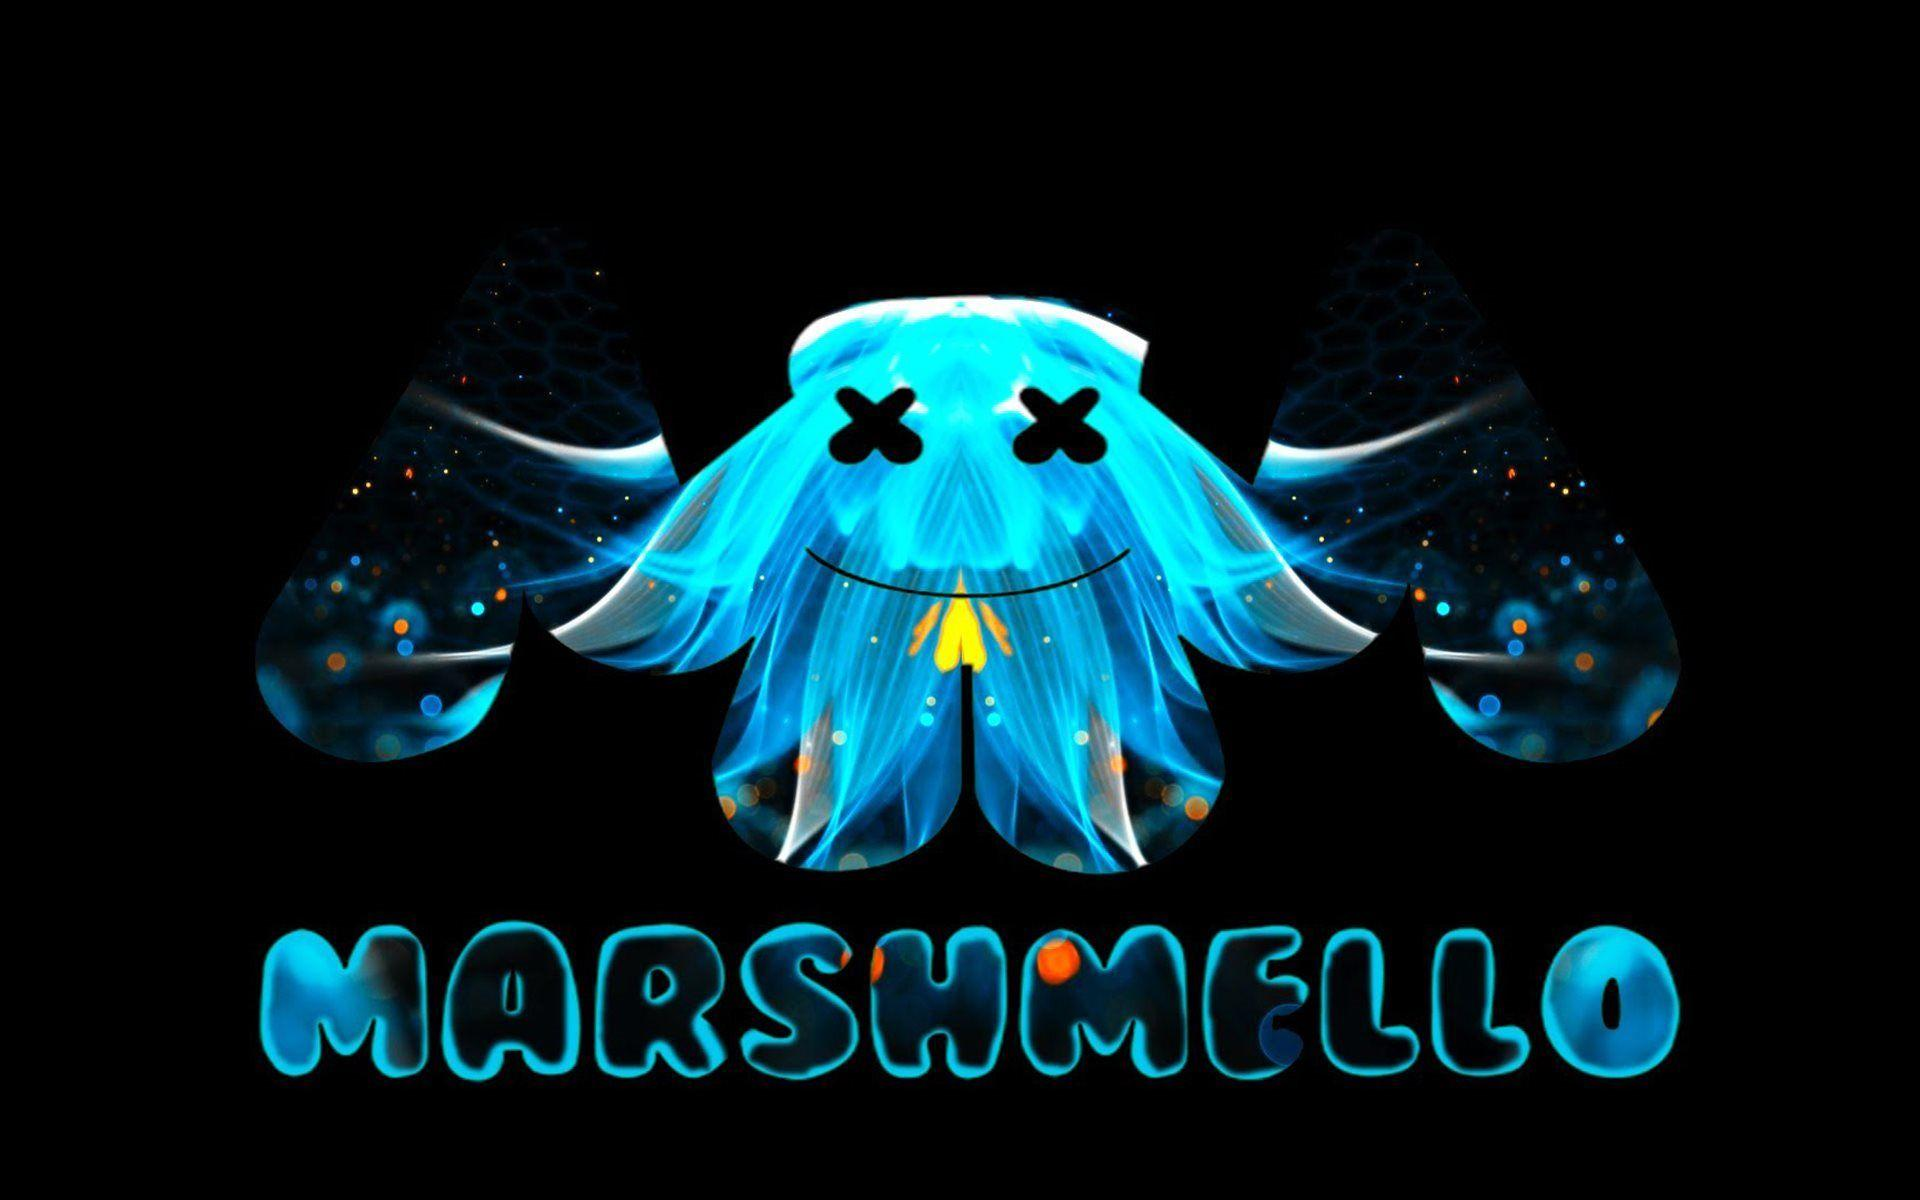 marshmello logo wallpapers wallpaper